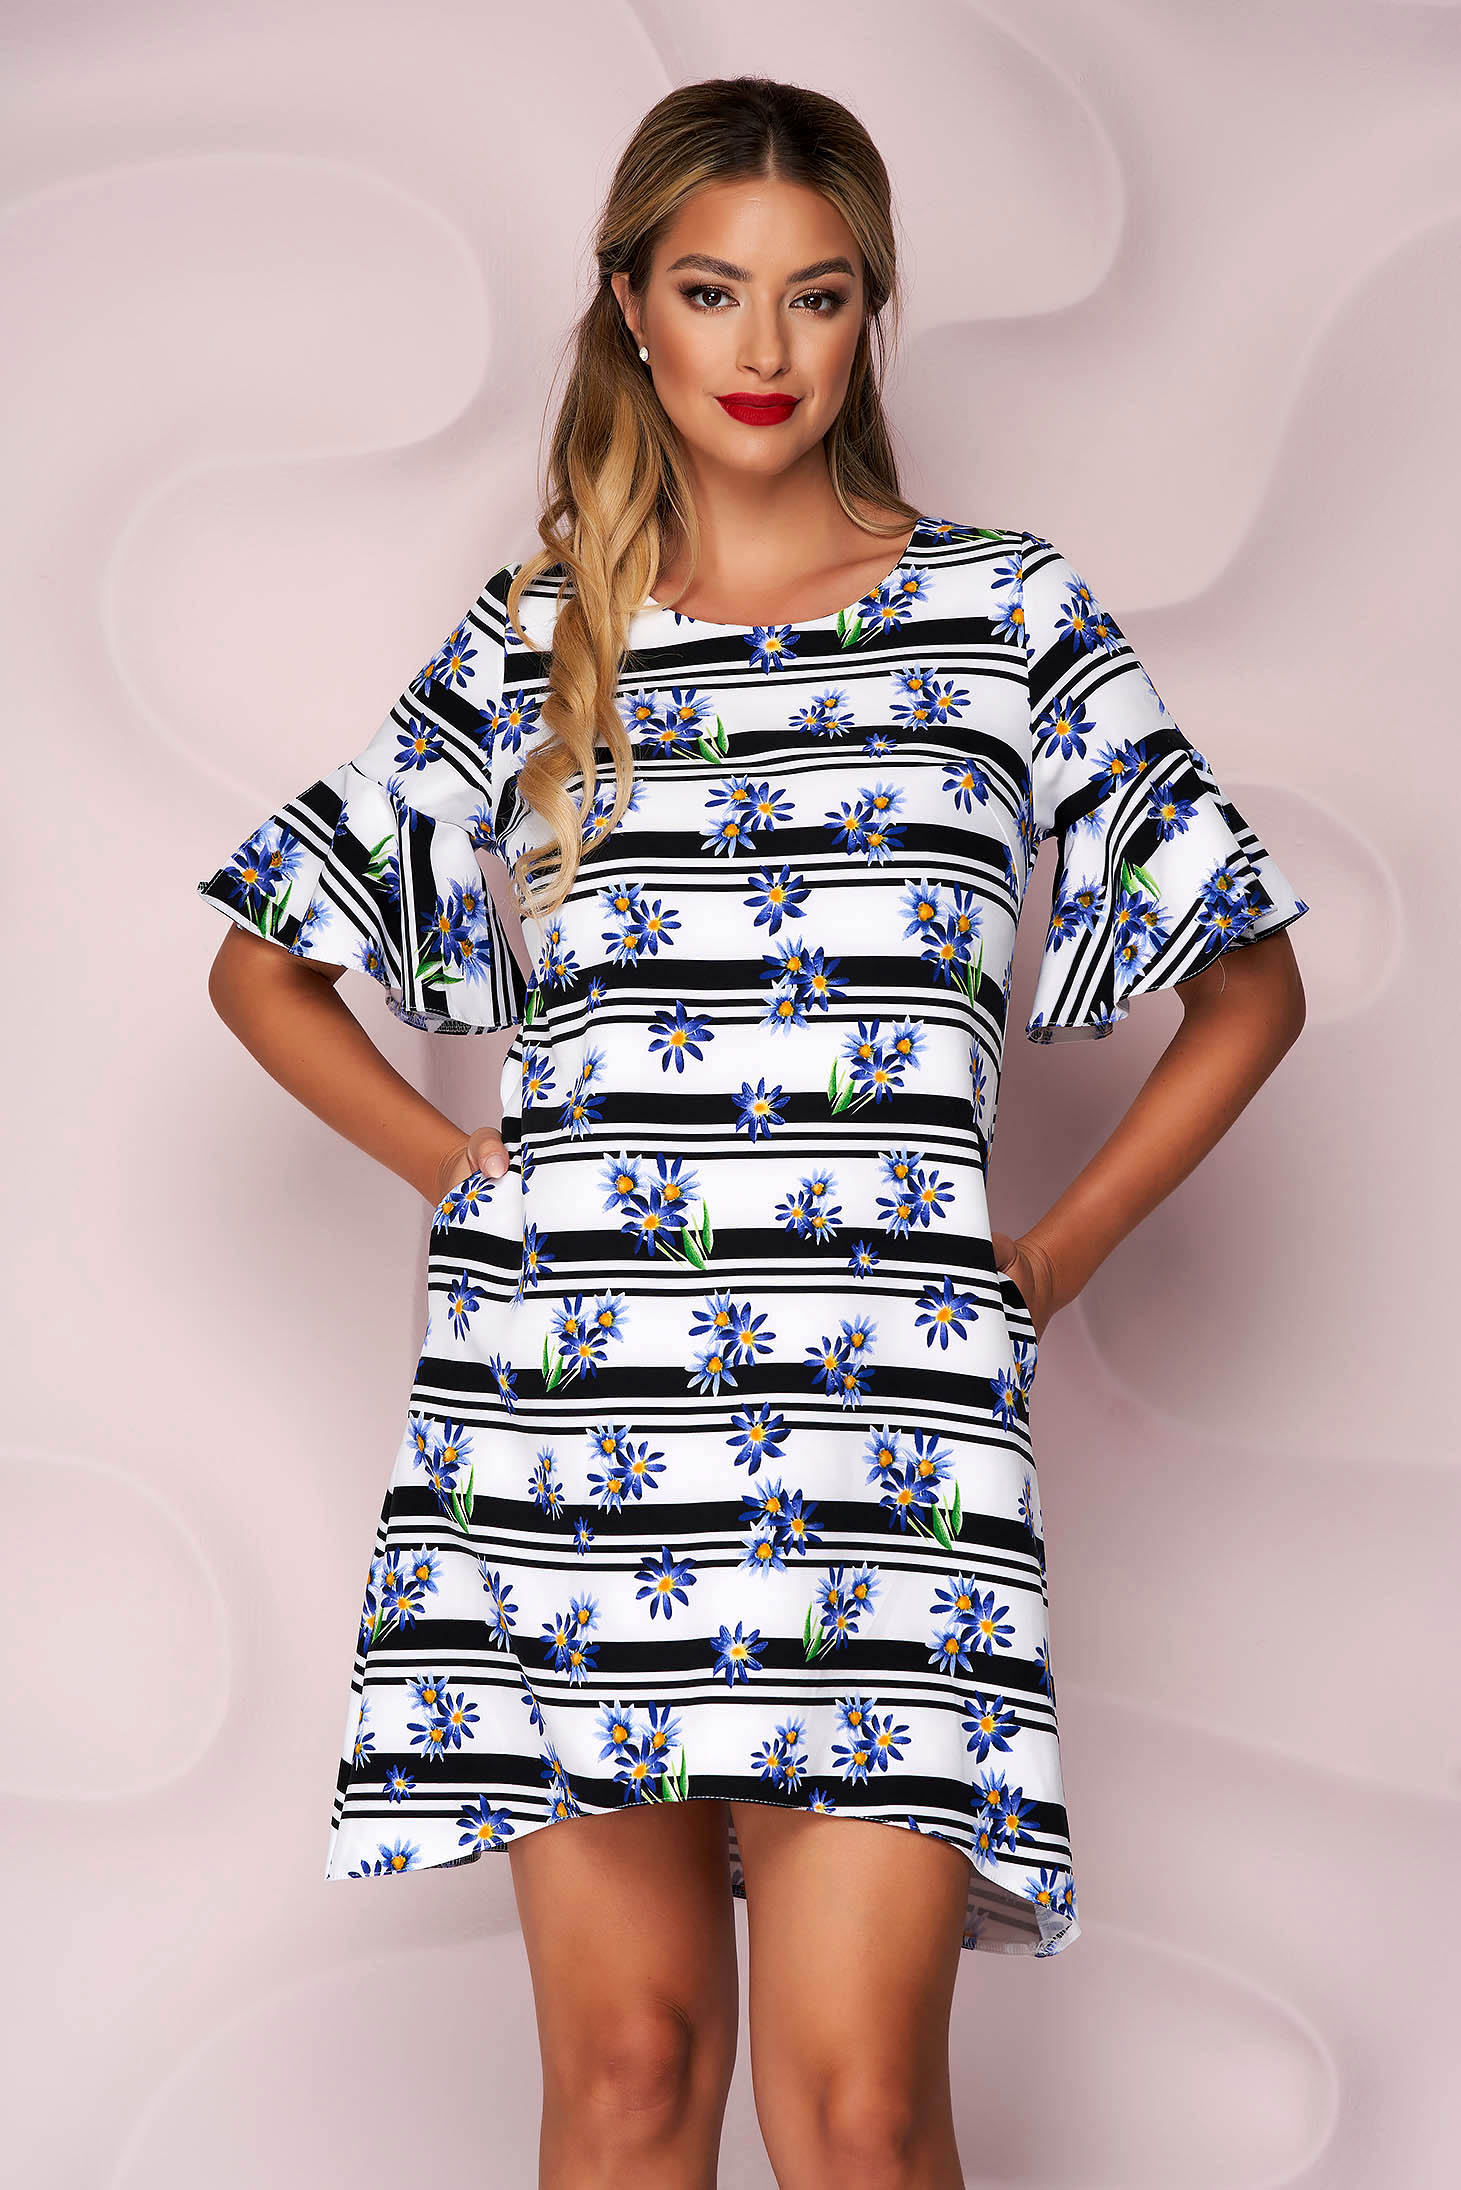 Dress short cut thin fabric nonelastic fabric lateral pockets loose fit